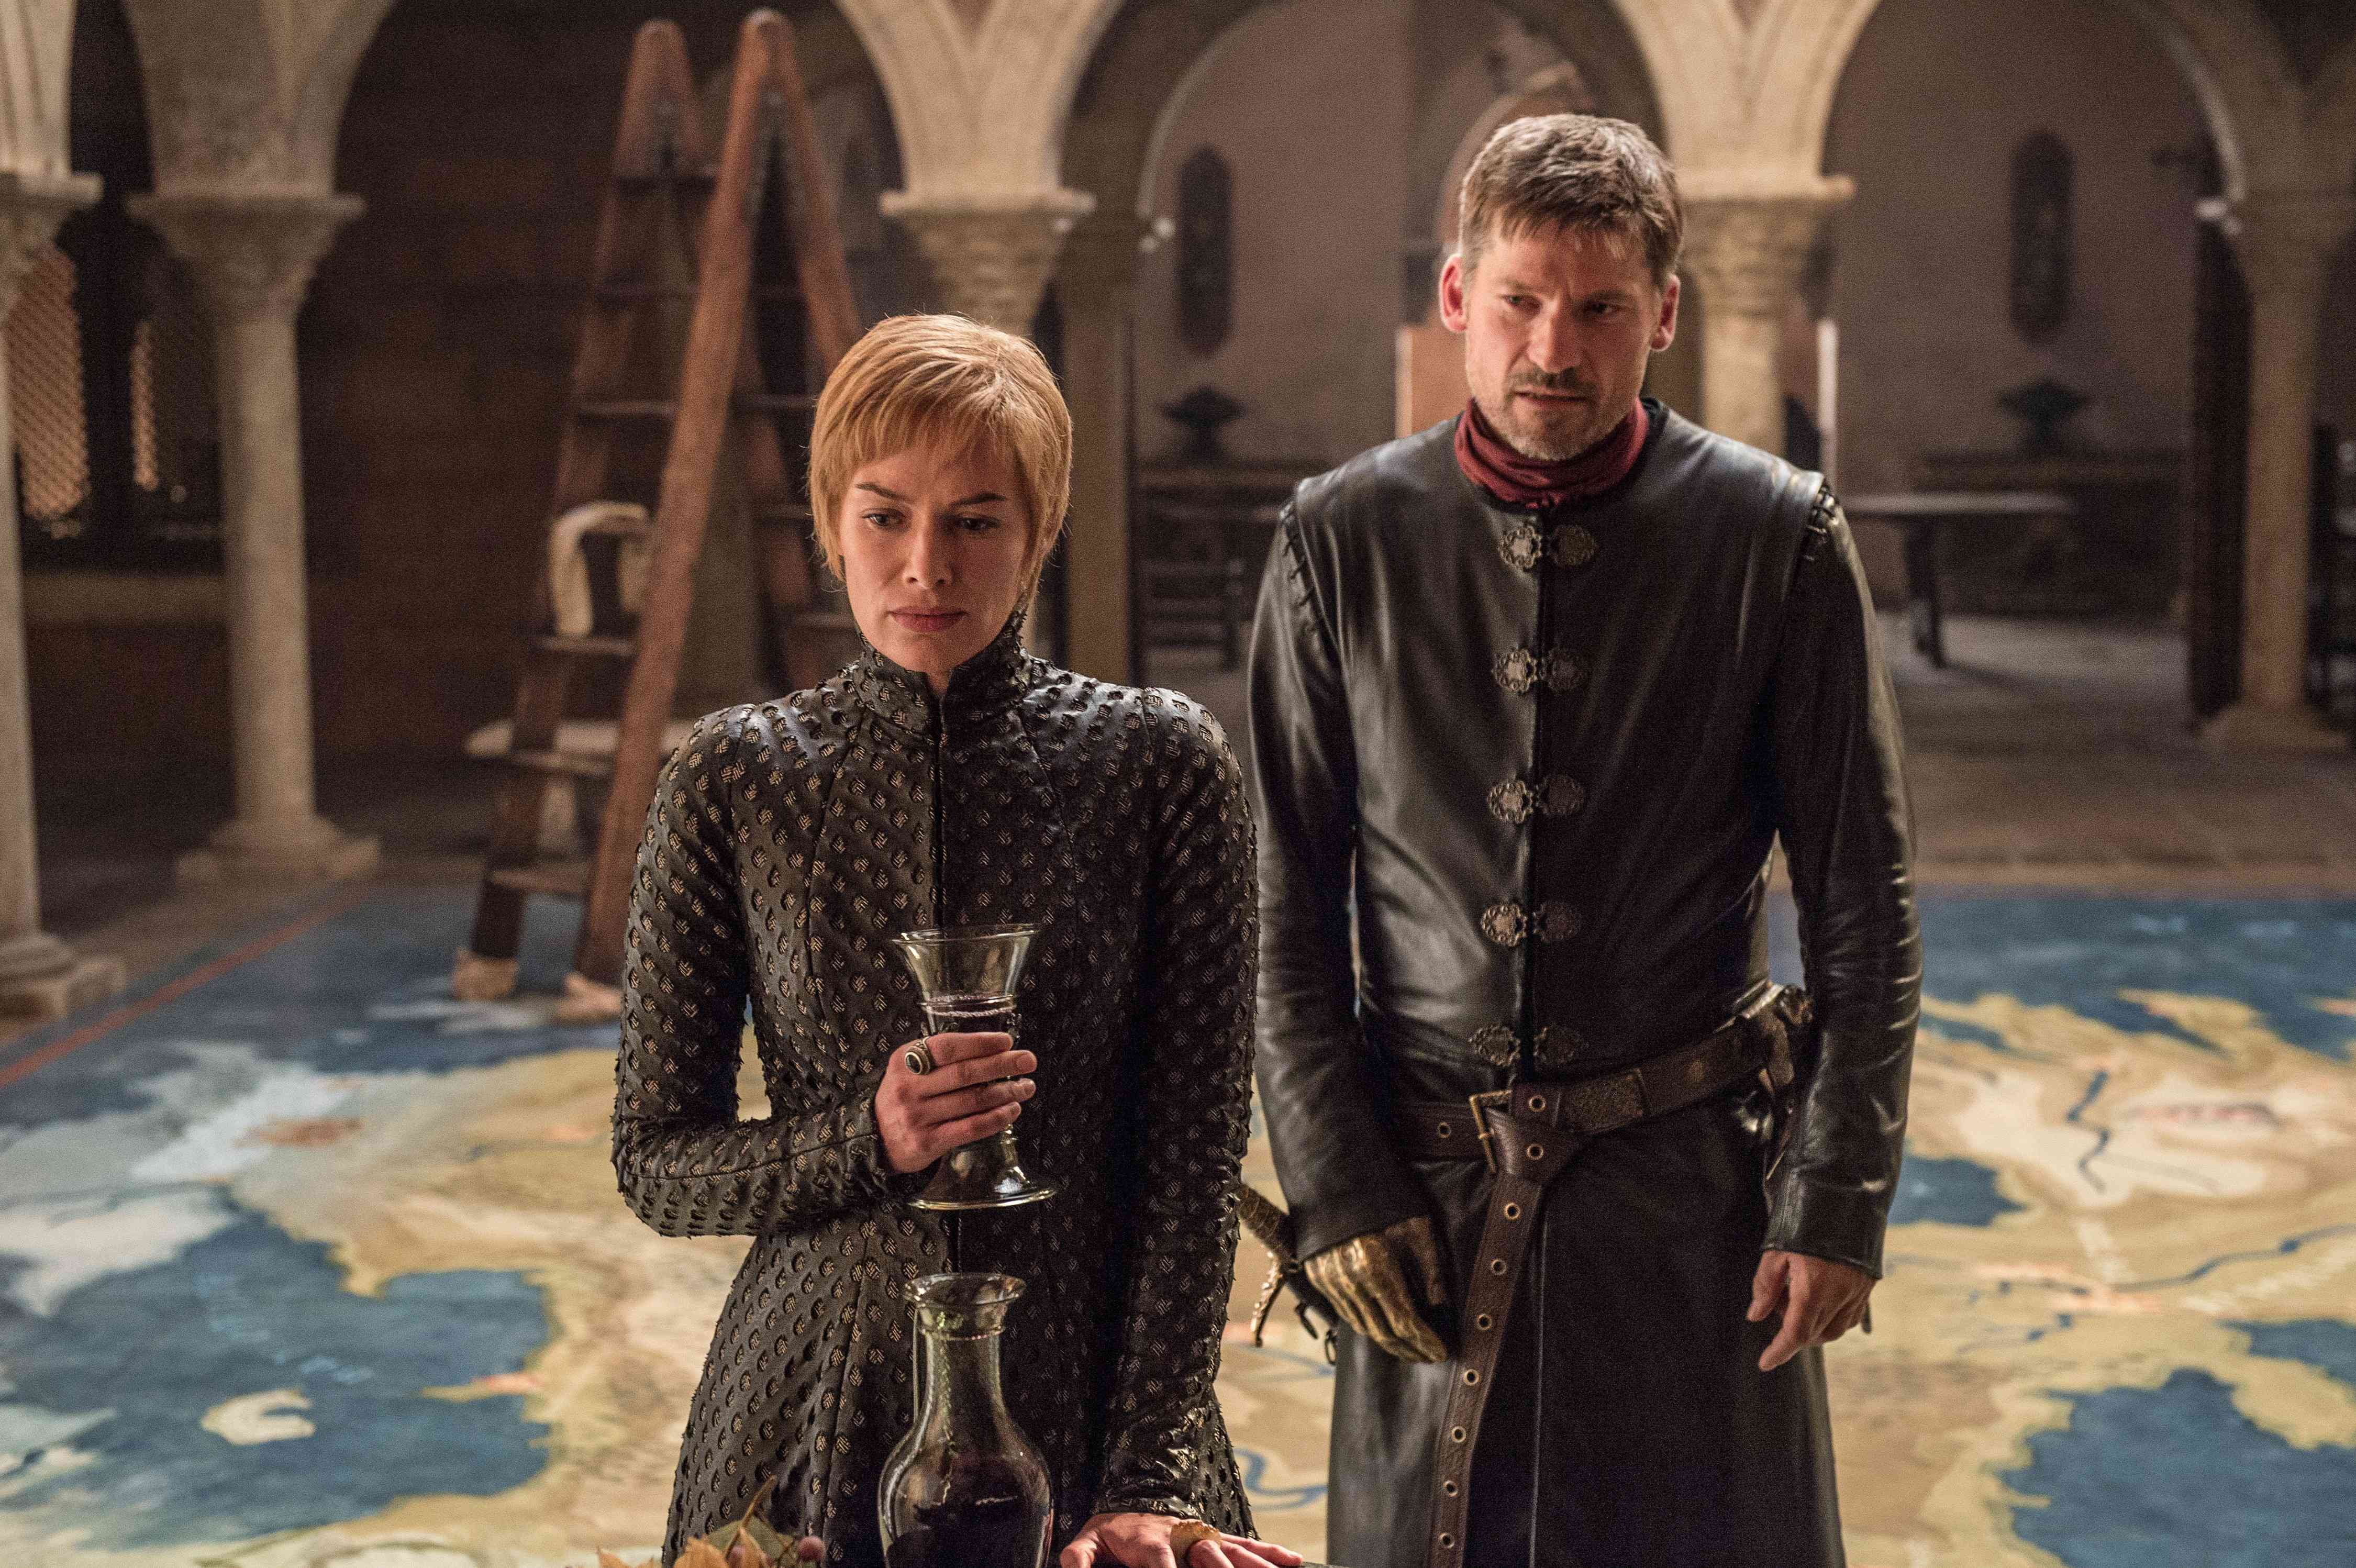 Cersei Lannister (Lena Headey) and Jaime Lannister (Nikolaj Coster-Waldau) in Game of Thrones. Courtesy HBO.